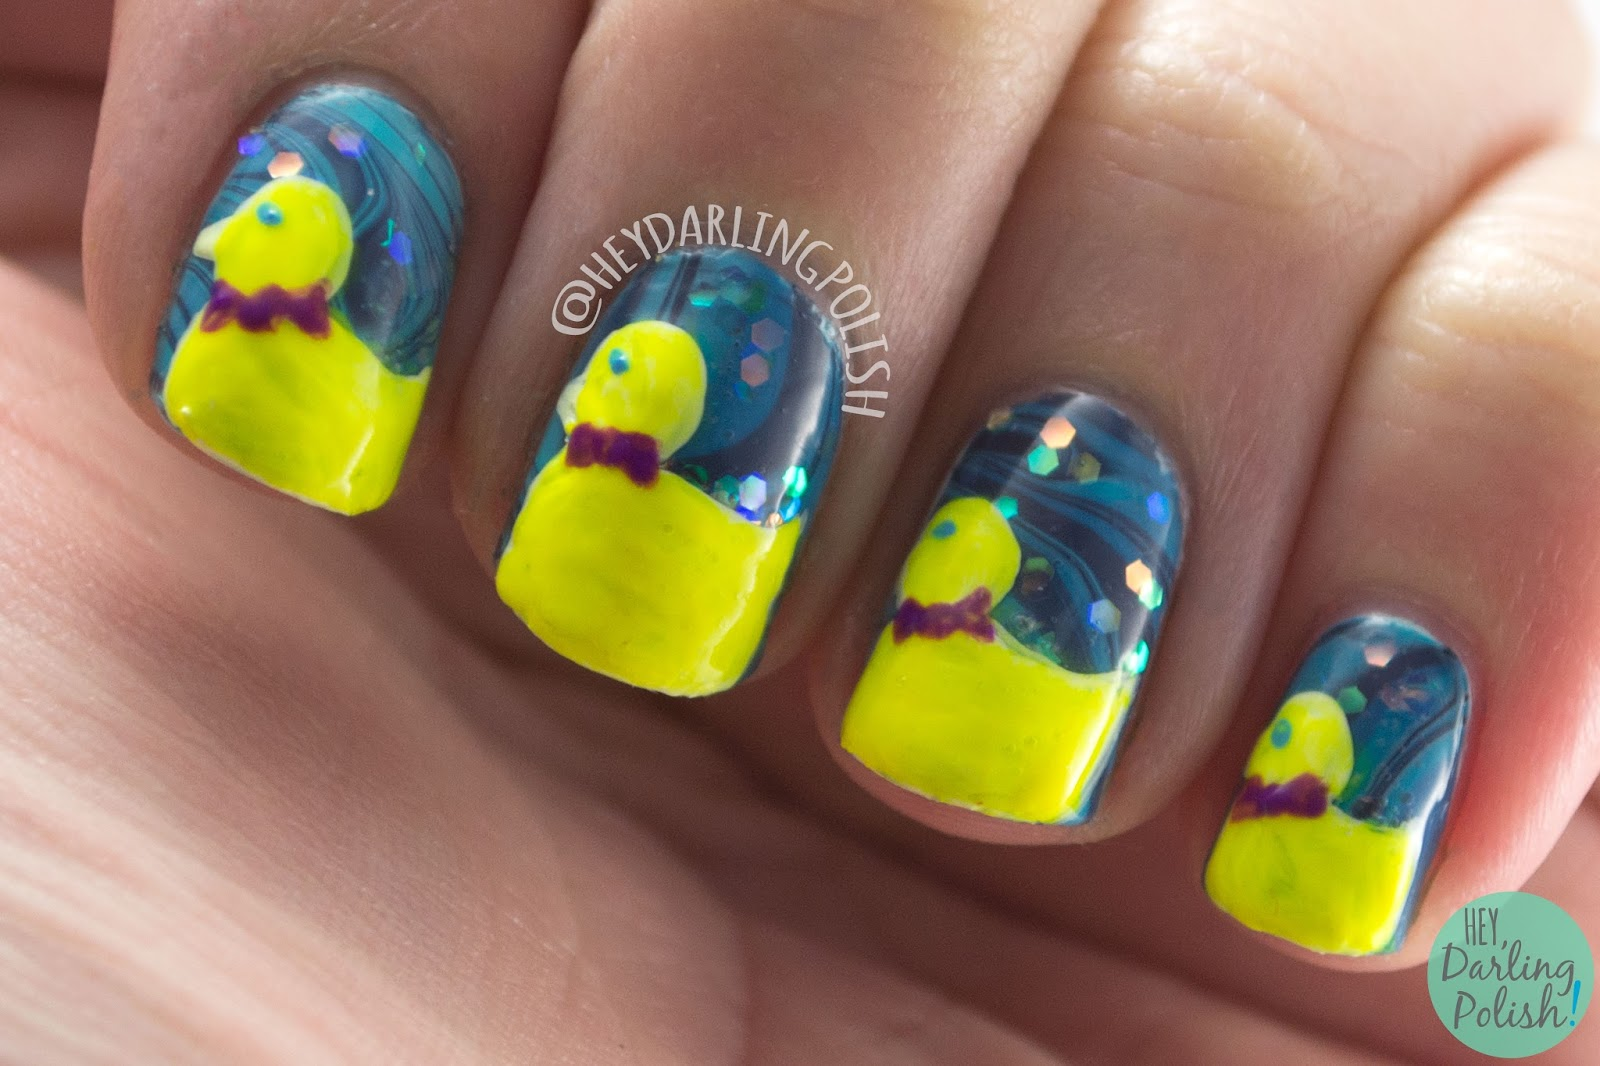 nails, nail art, nail polish, rubber duckies, ducks, hey darling polish, watermarble, blue, glitter, neon,